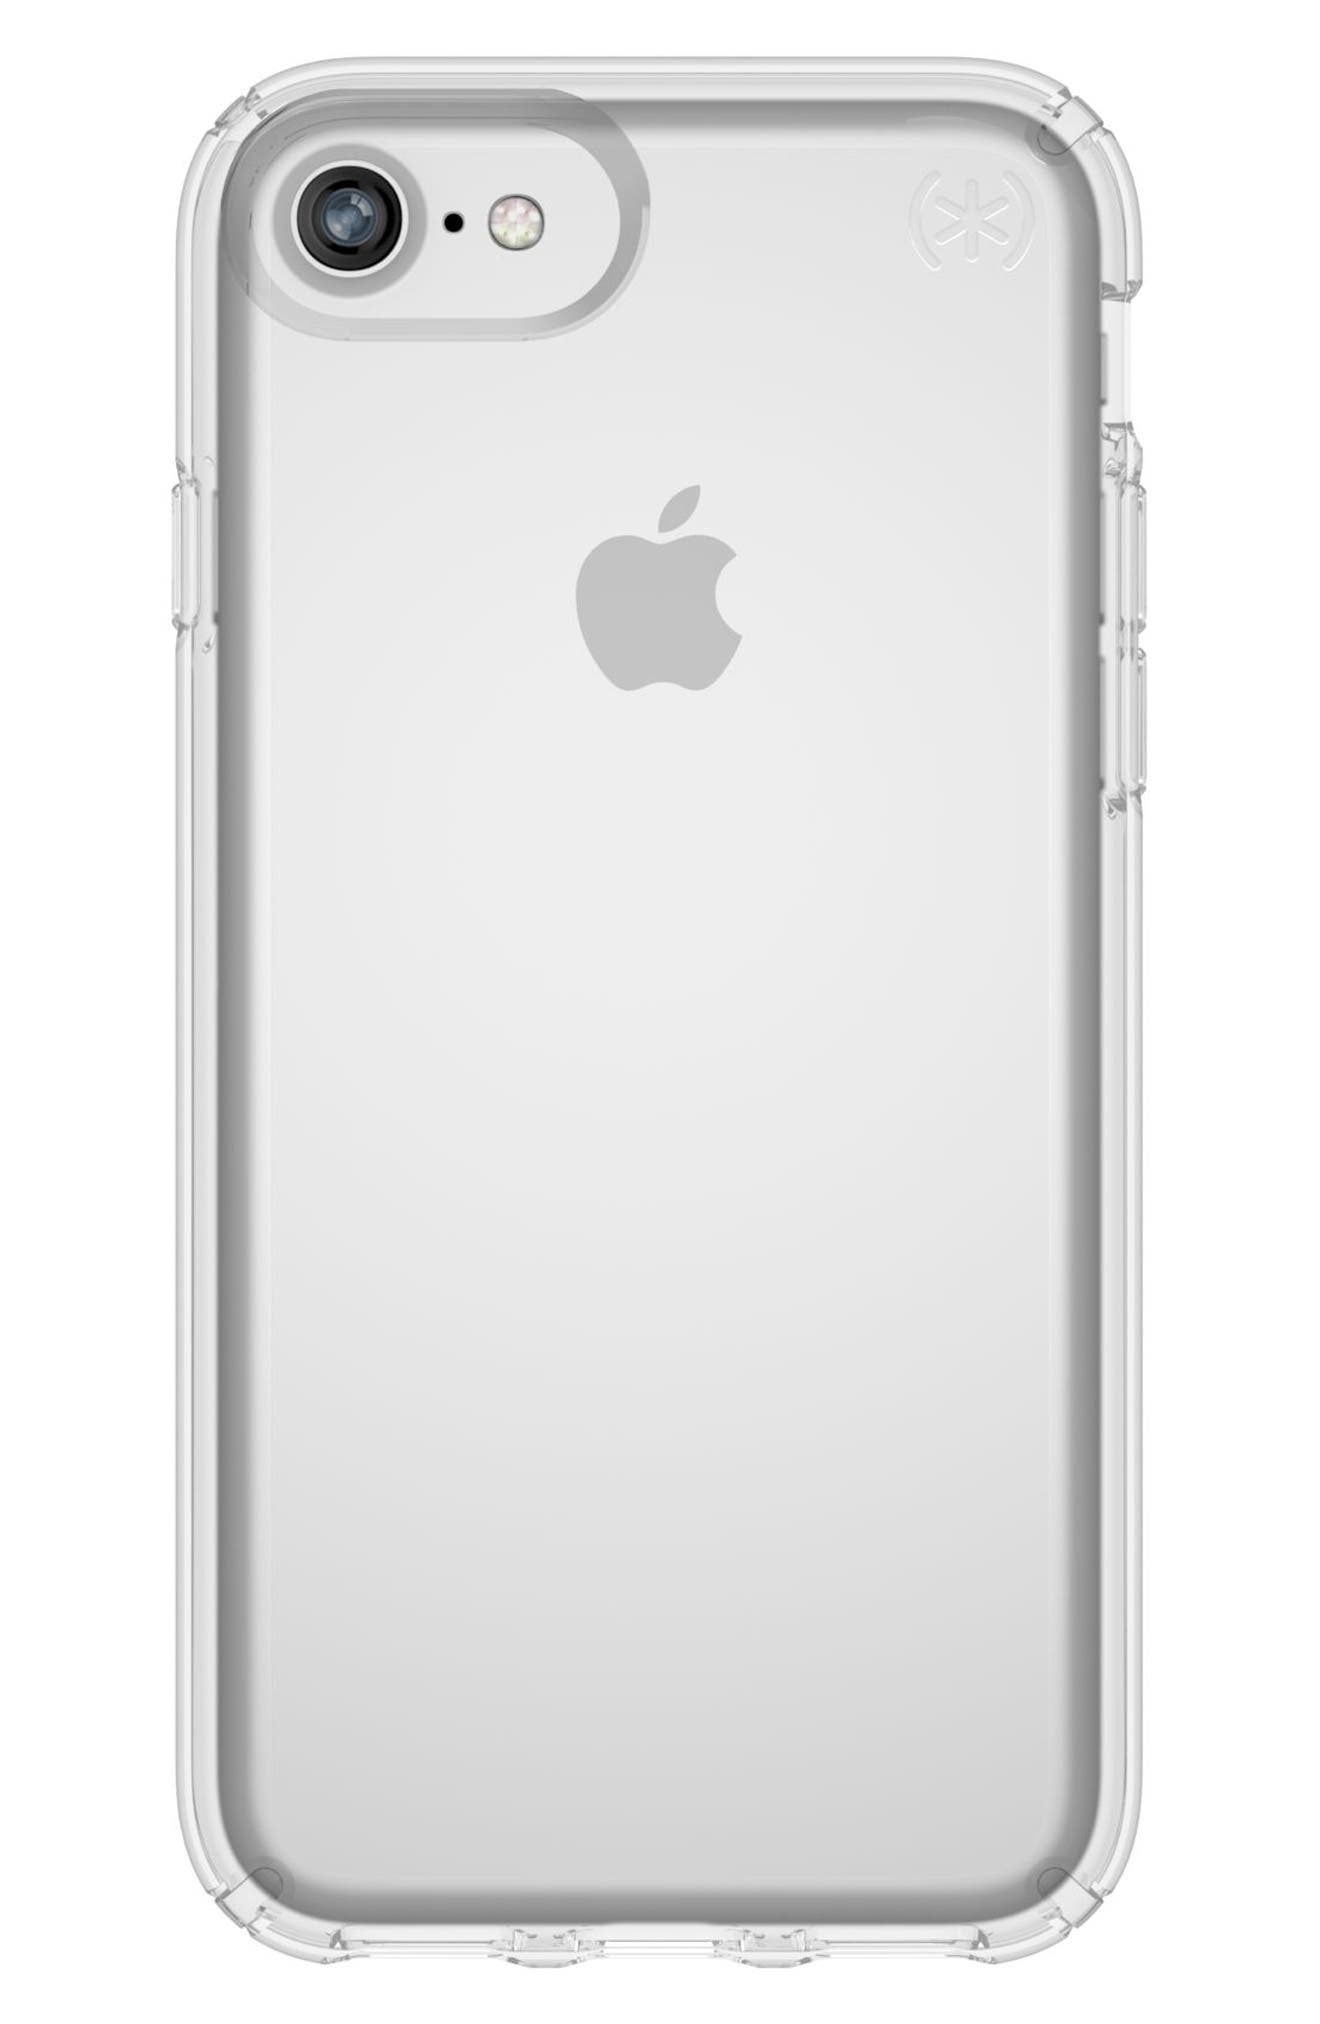 Transparent iPhone 6/6s/7/8 Case,                             Main thumbnail 1, color,                             Clear/ Clear